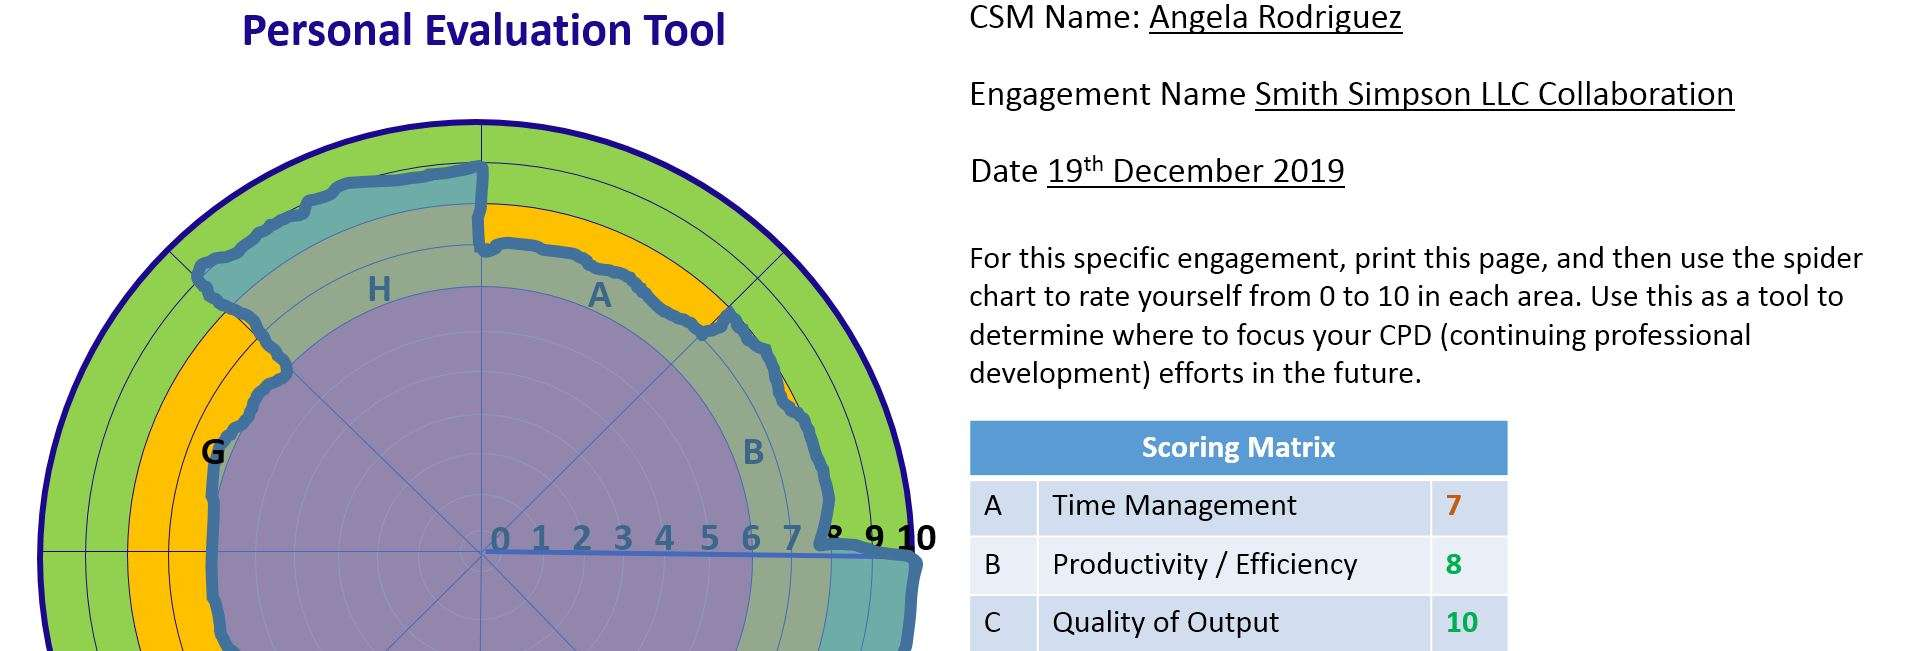 The CSM Personal Evaluation Tool